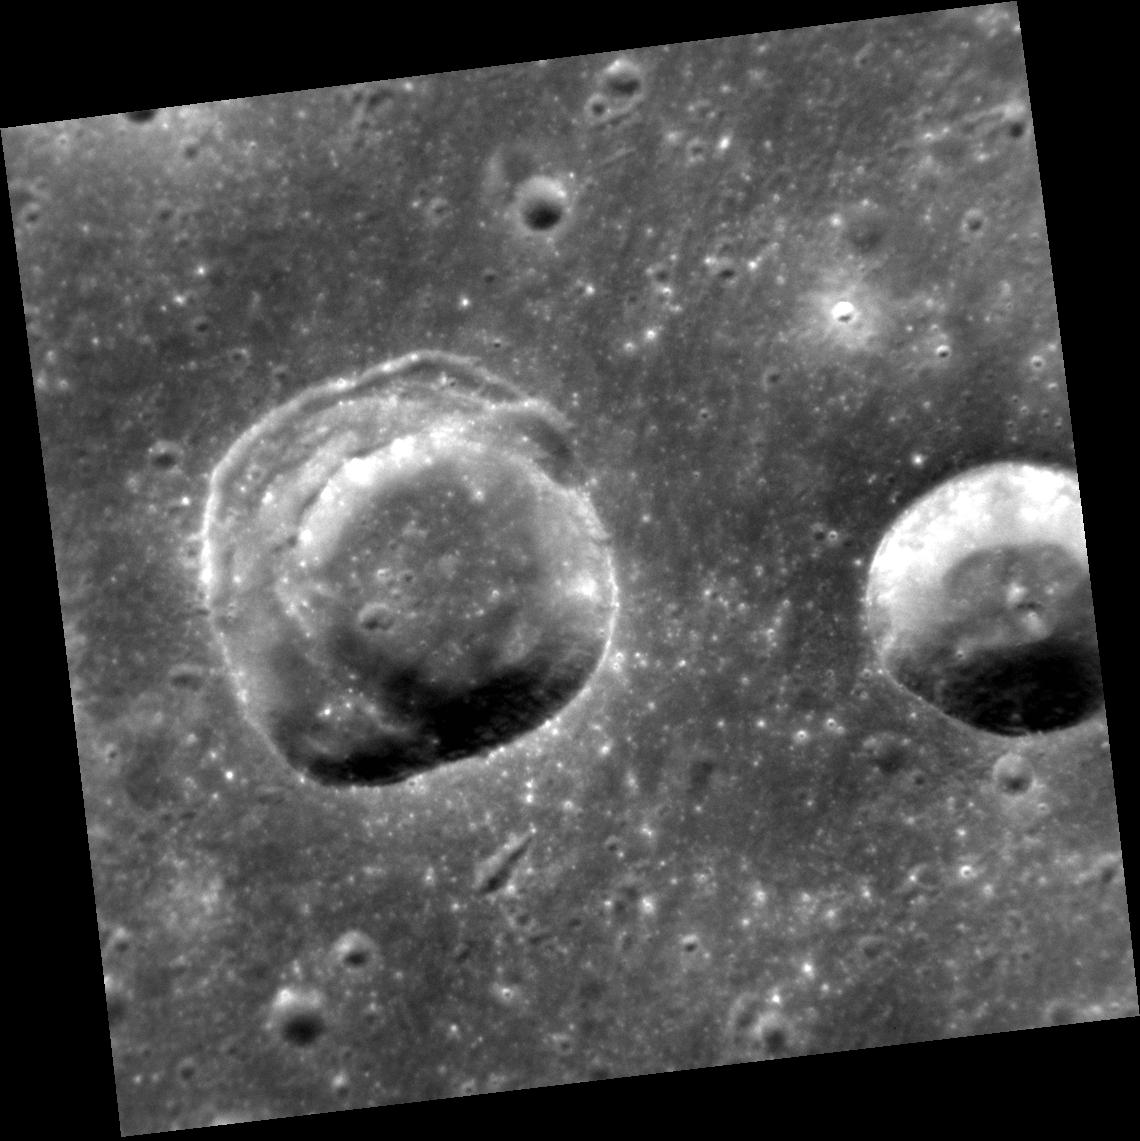 Crater with Slumping Sides on Mercury